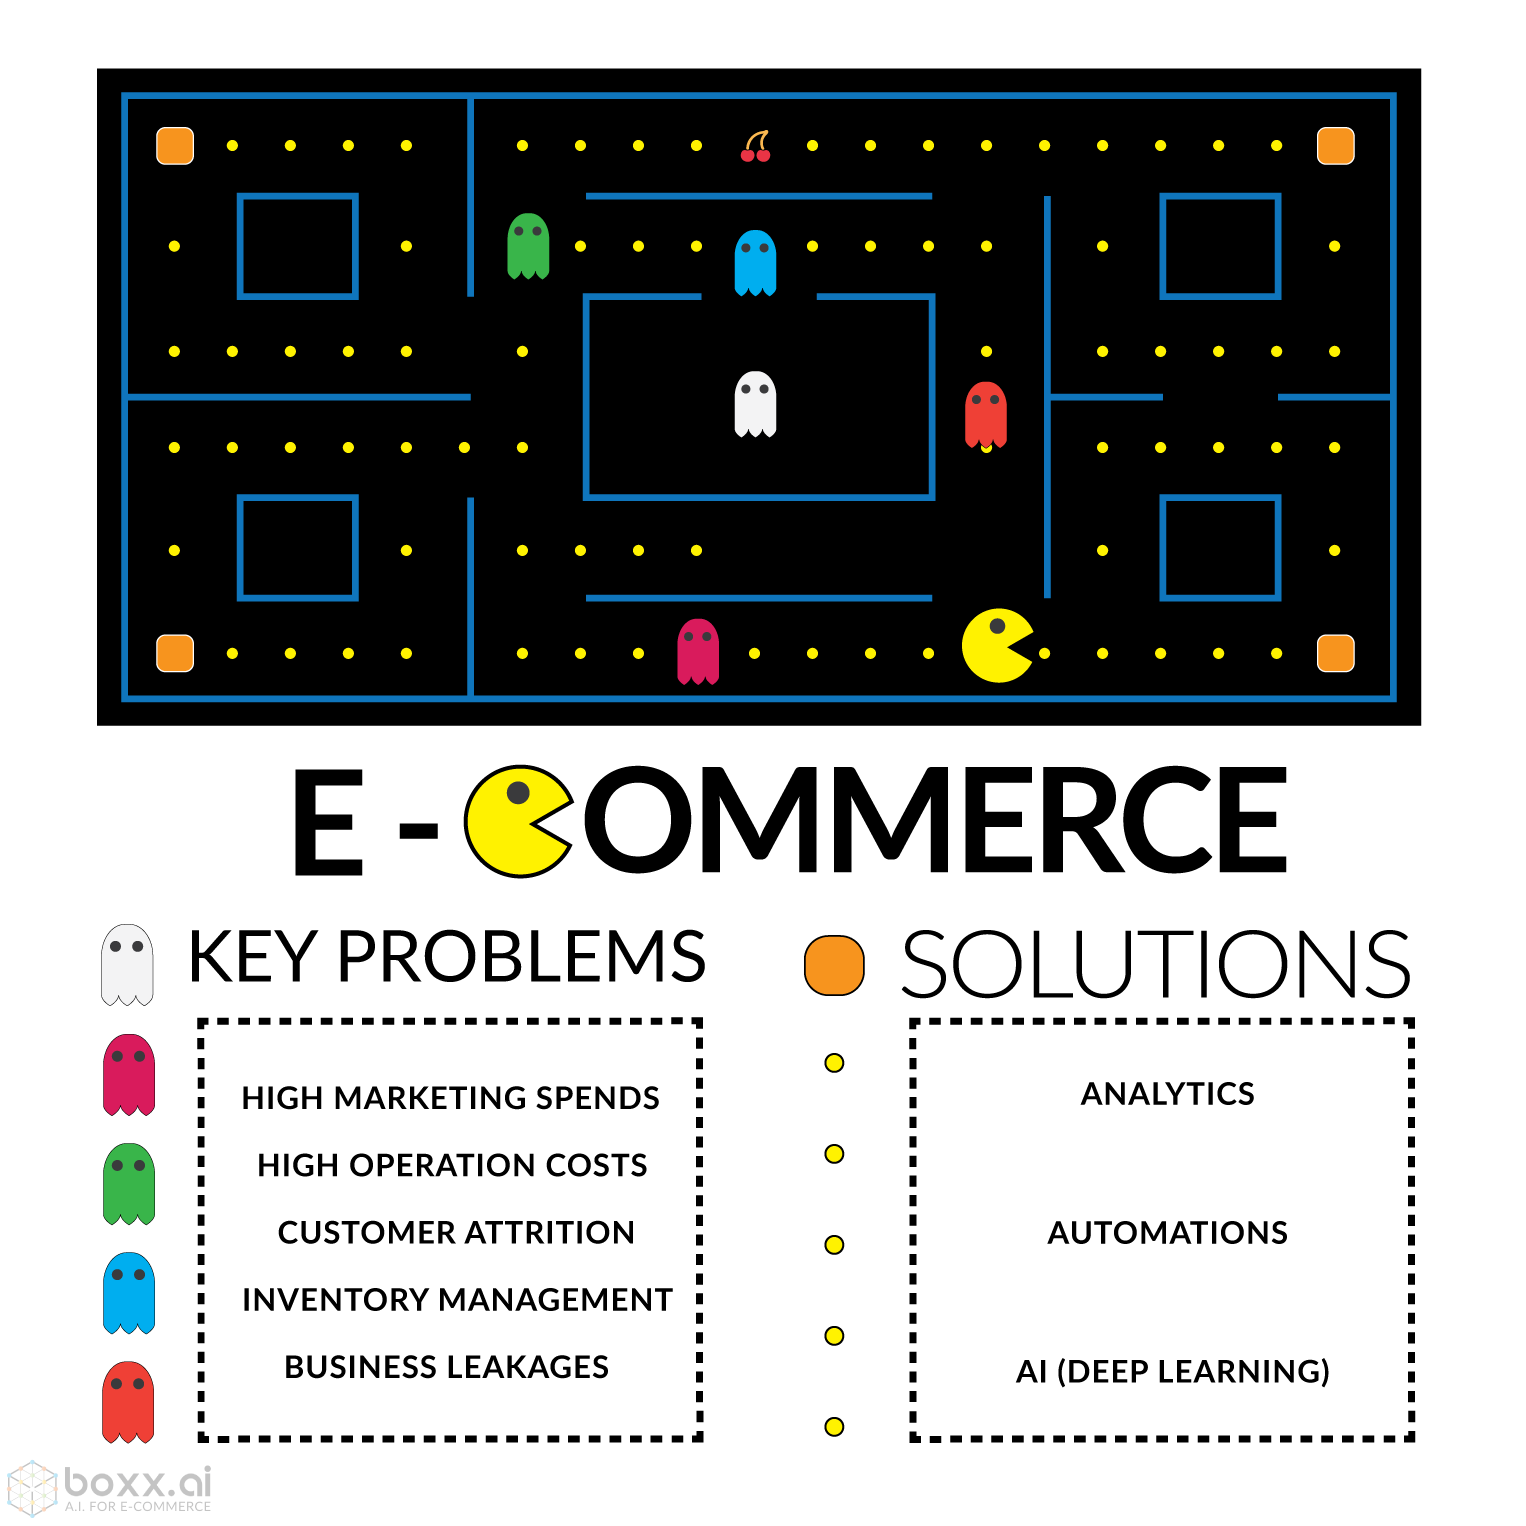 Key Problems in E-Commerce